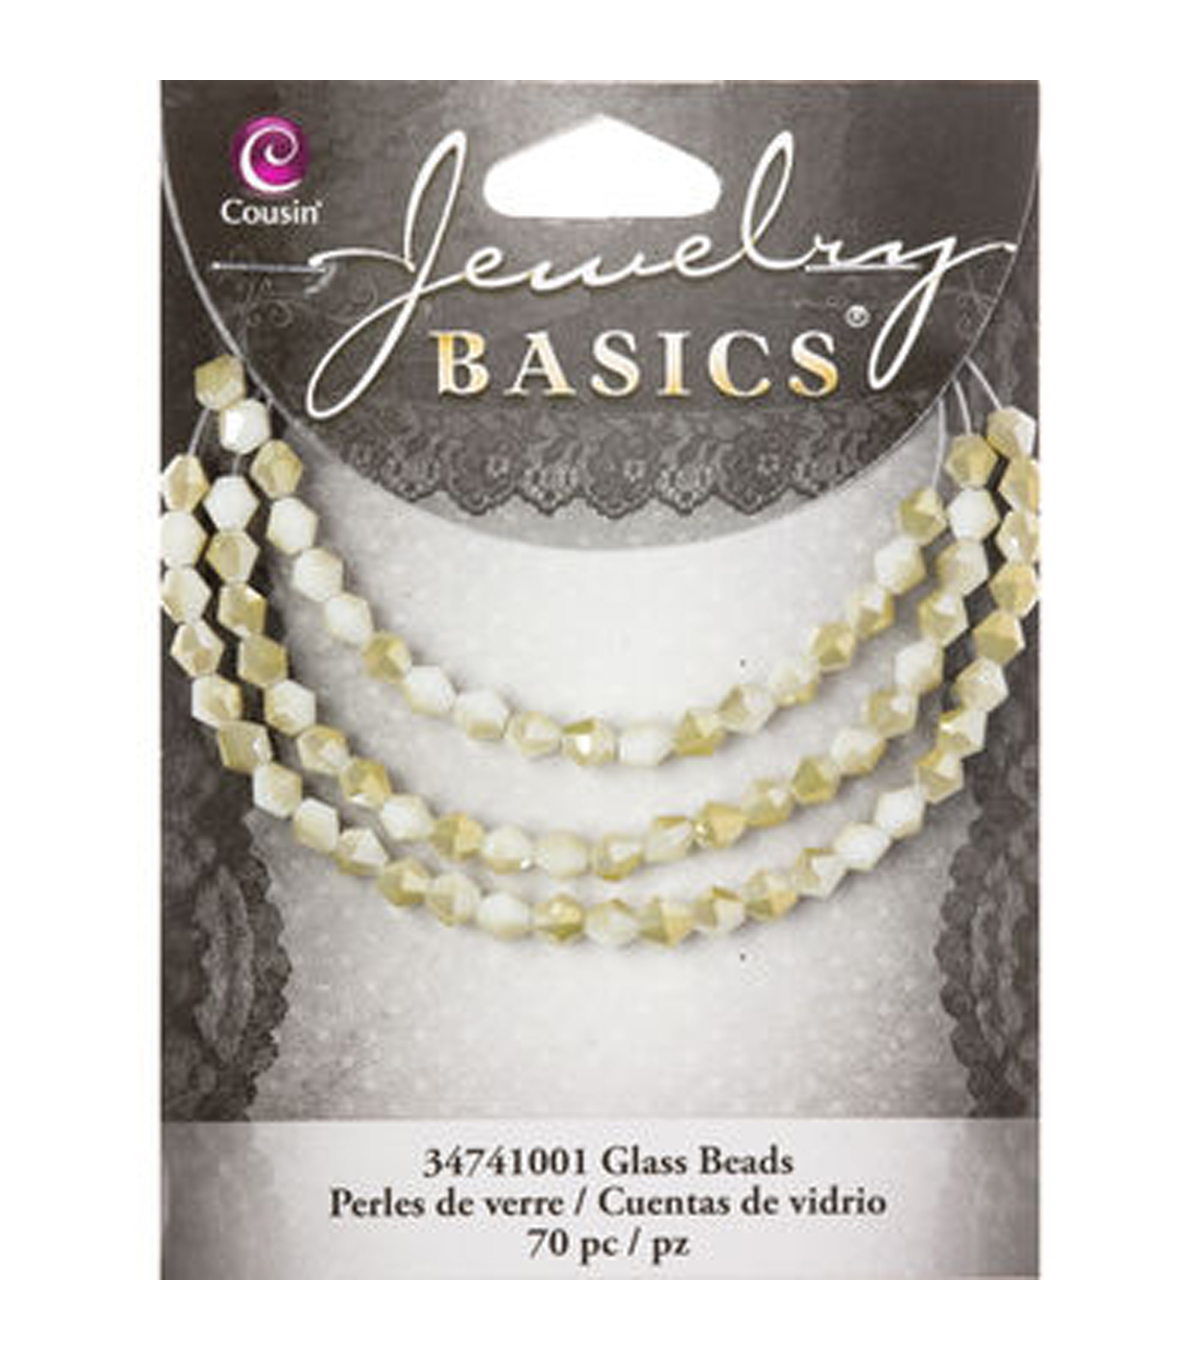 Jewelry Basics 70pc Glass 4mm Bicone 2Tone Cream Mirror Beads by Cousin